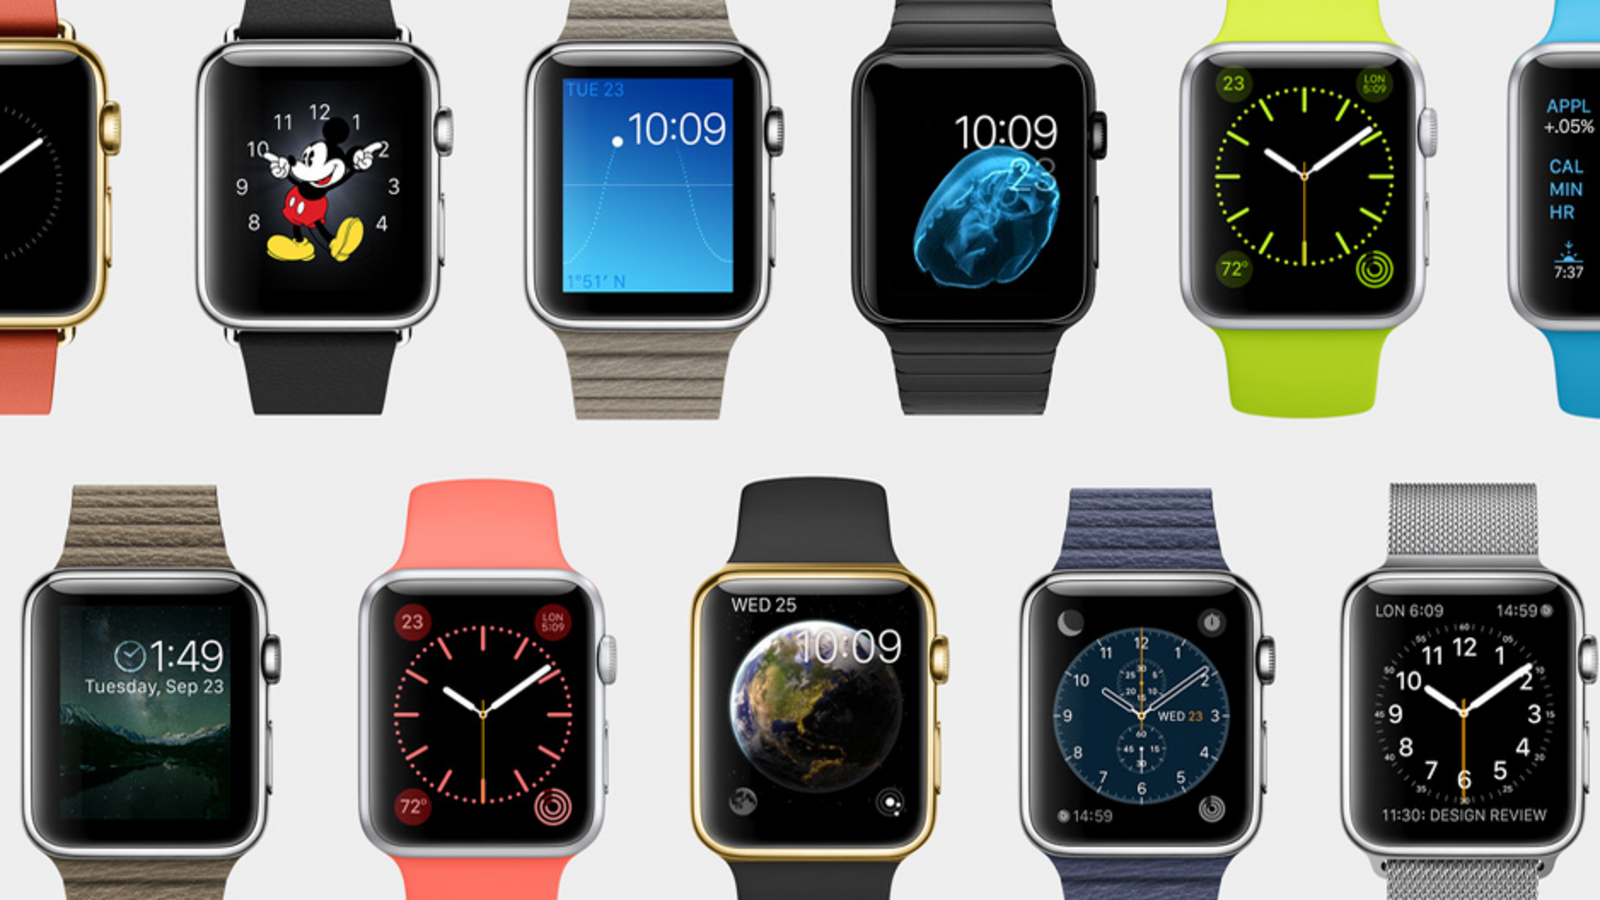 You can choose and customize the watch face you like, it's easy.